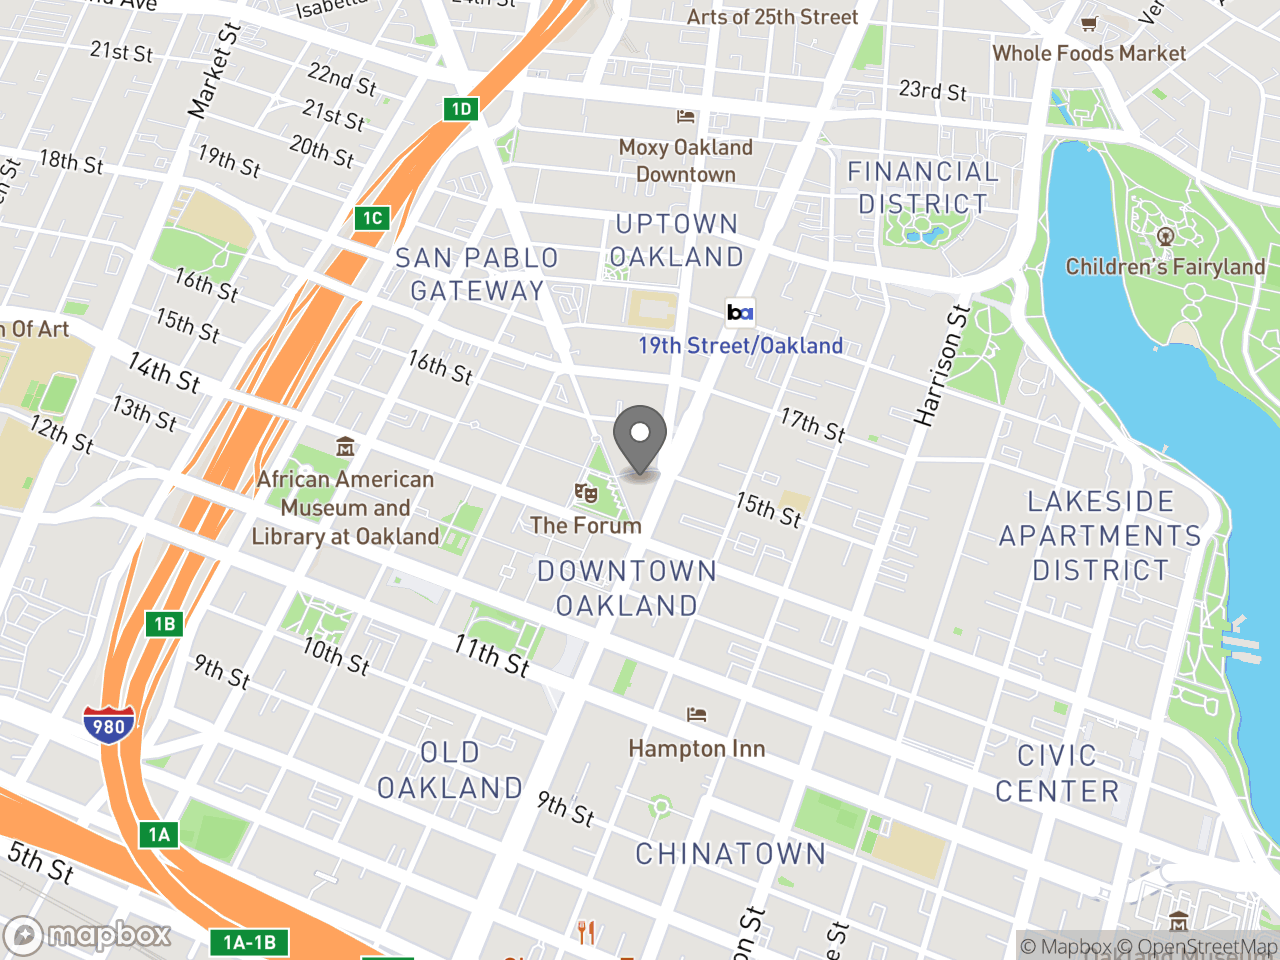 Map image for Supportive Financial Services, located at 150 Frank H. Ogawa Plaza in Oakland, CA 94612